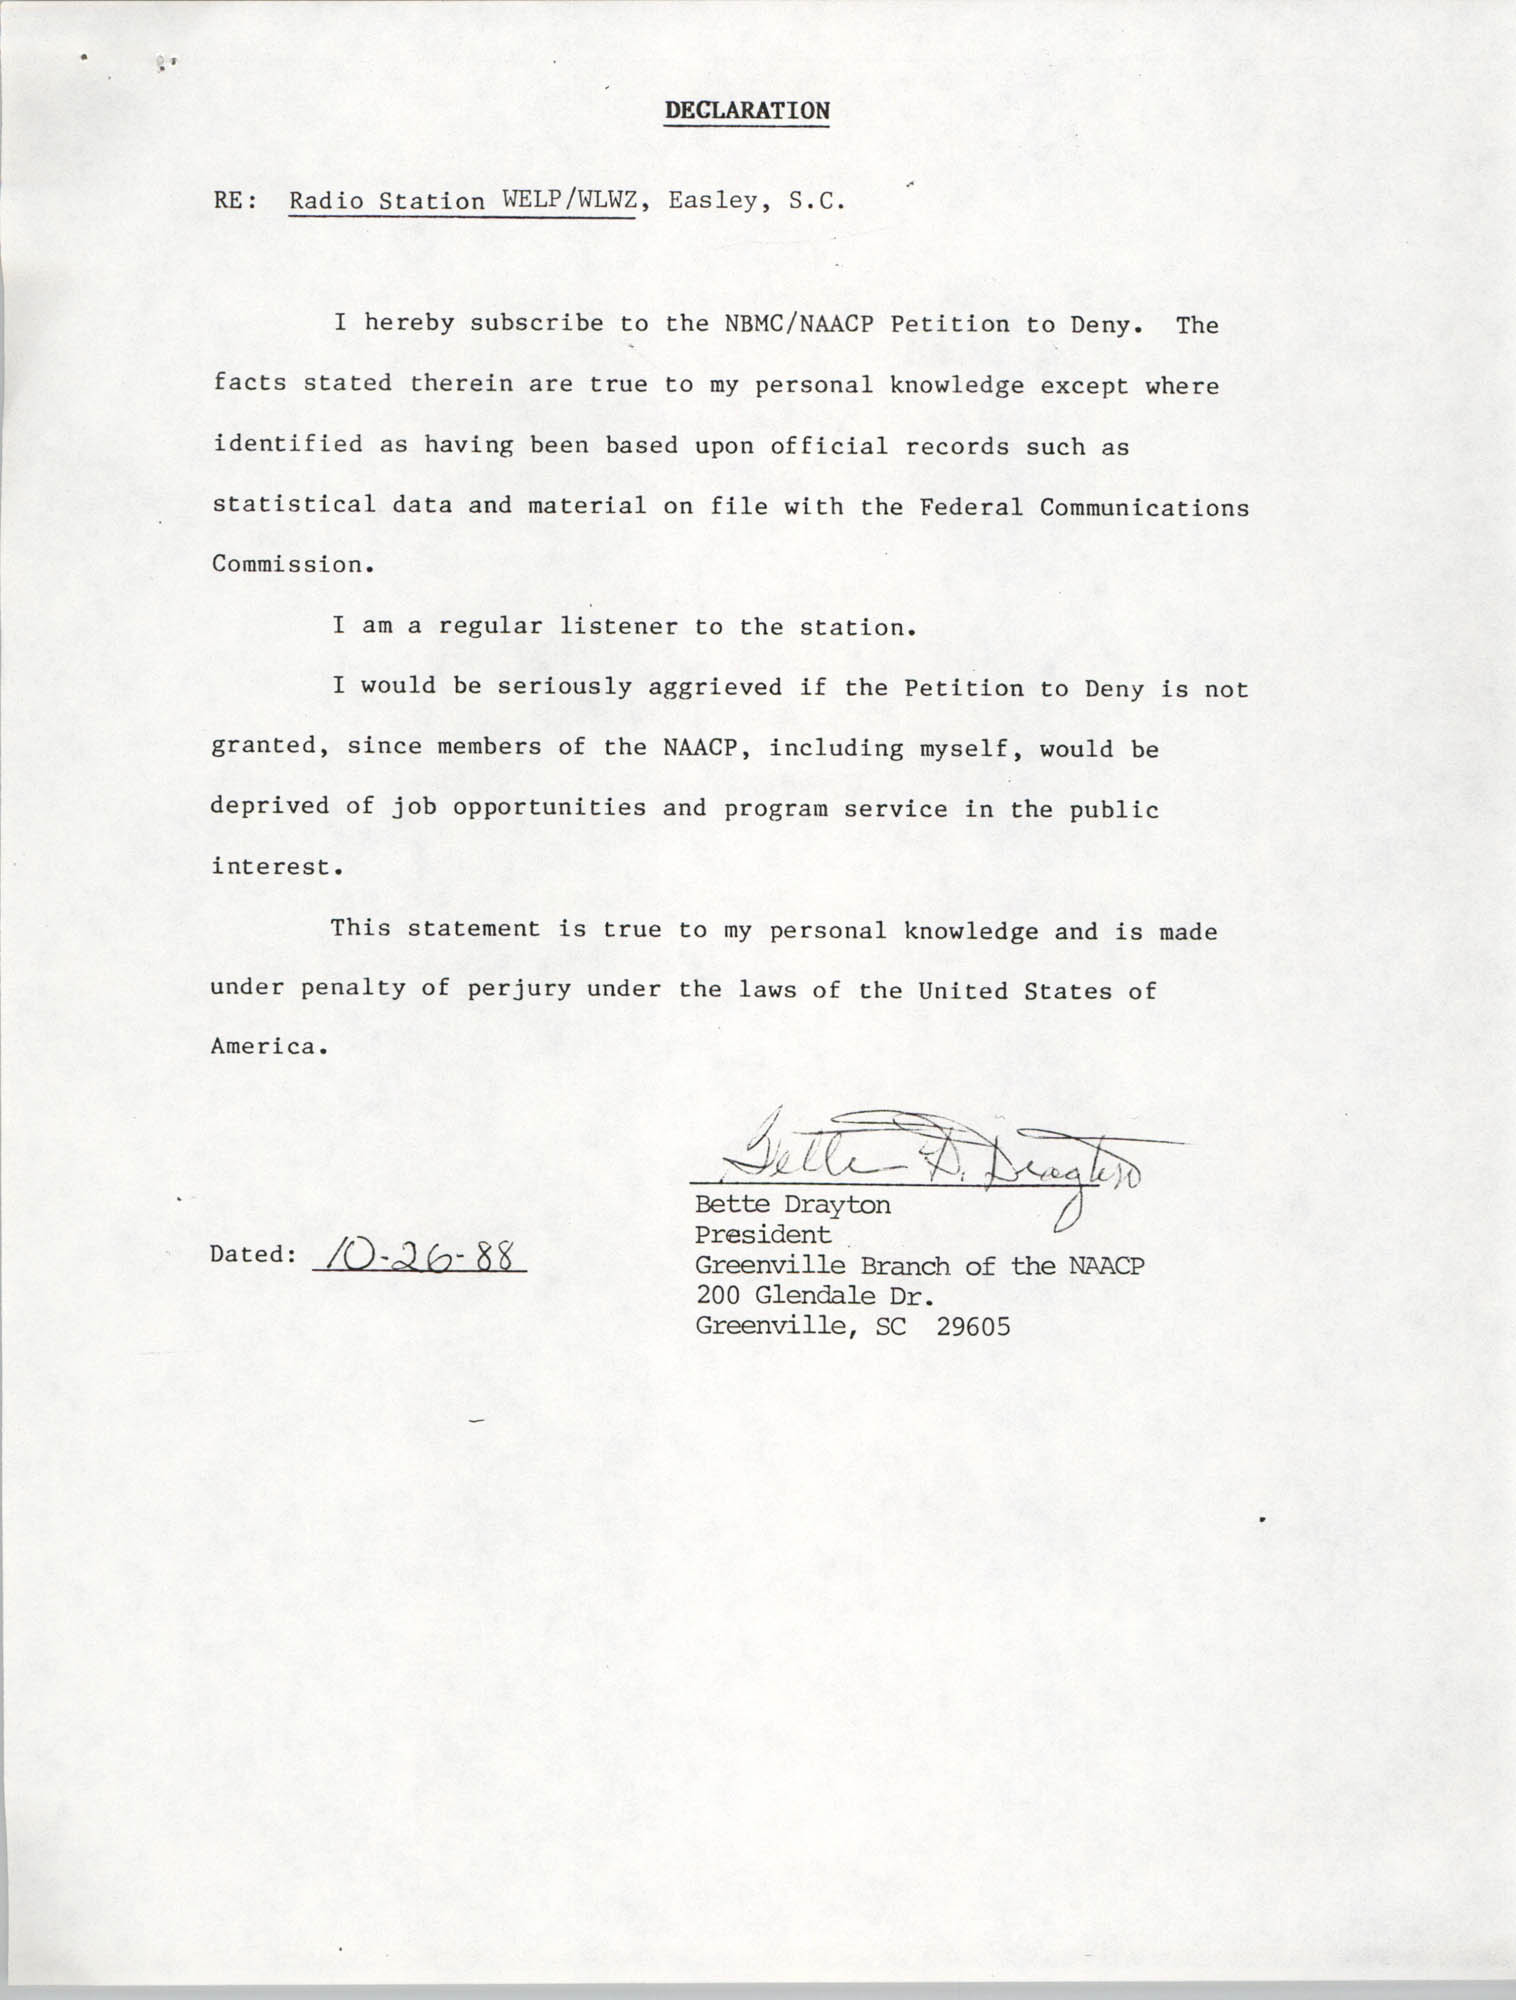 NAACP Petition Submitted Before the Federal Communications Commission, Declaration from Bette Drayton